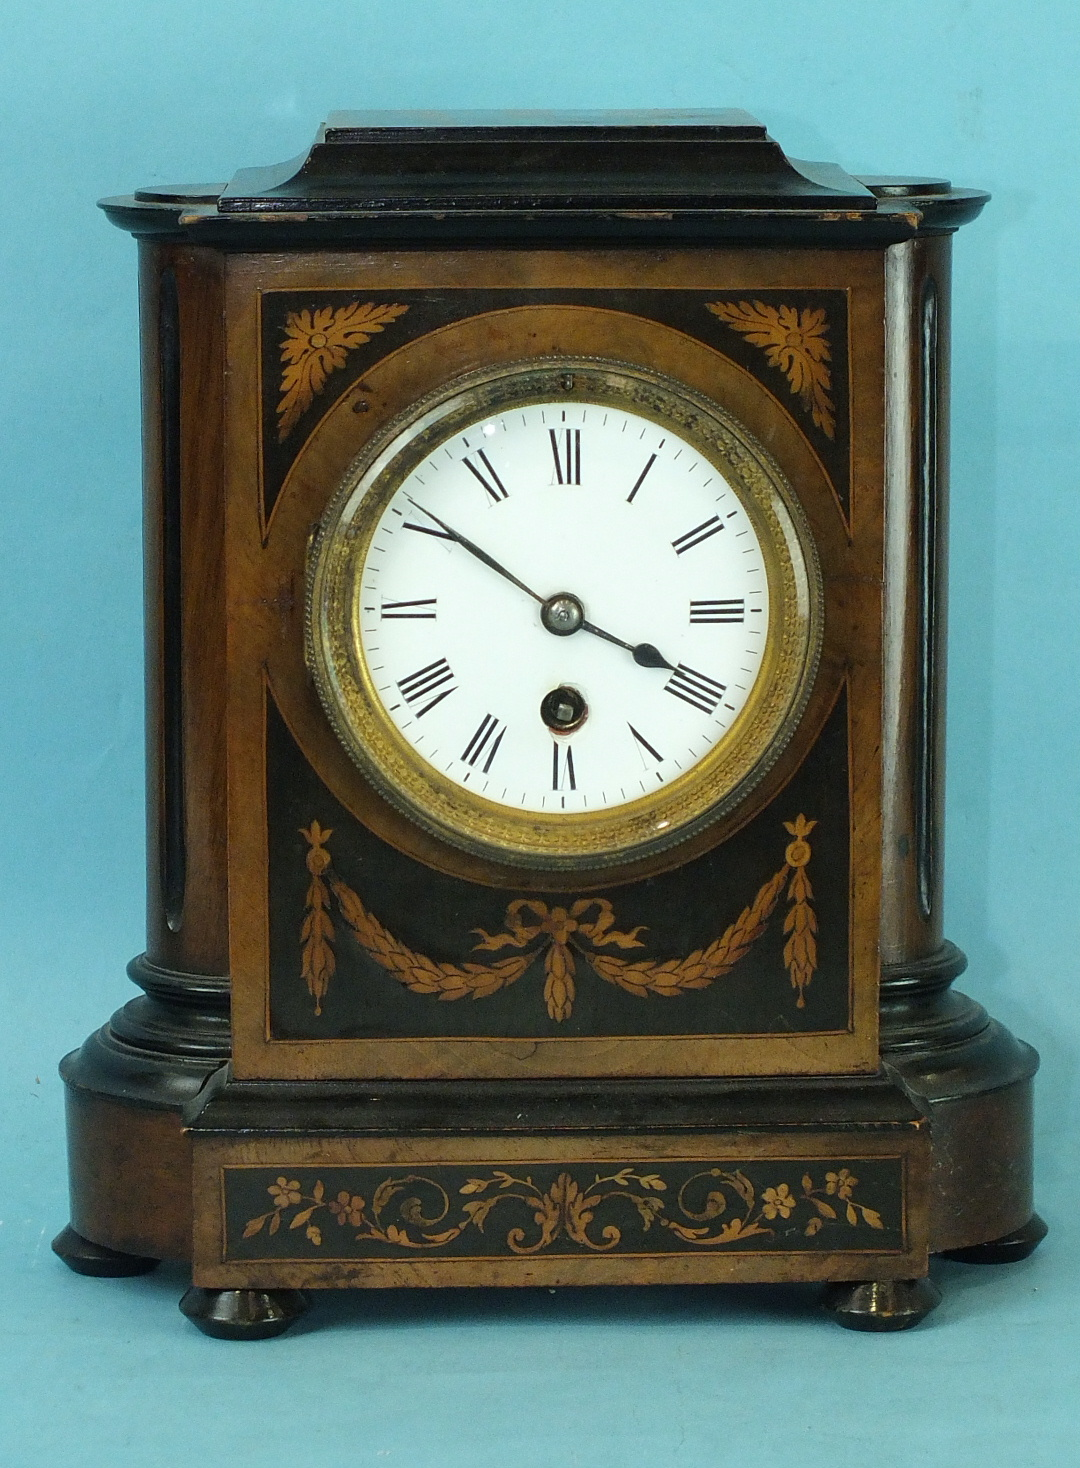 Lot 128 - A 19th century walnut and mahogany mantel clock with circular enamelled dial and drum movement, 27cm